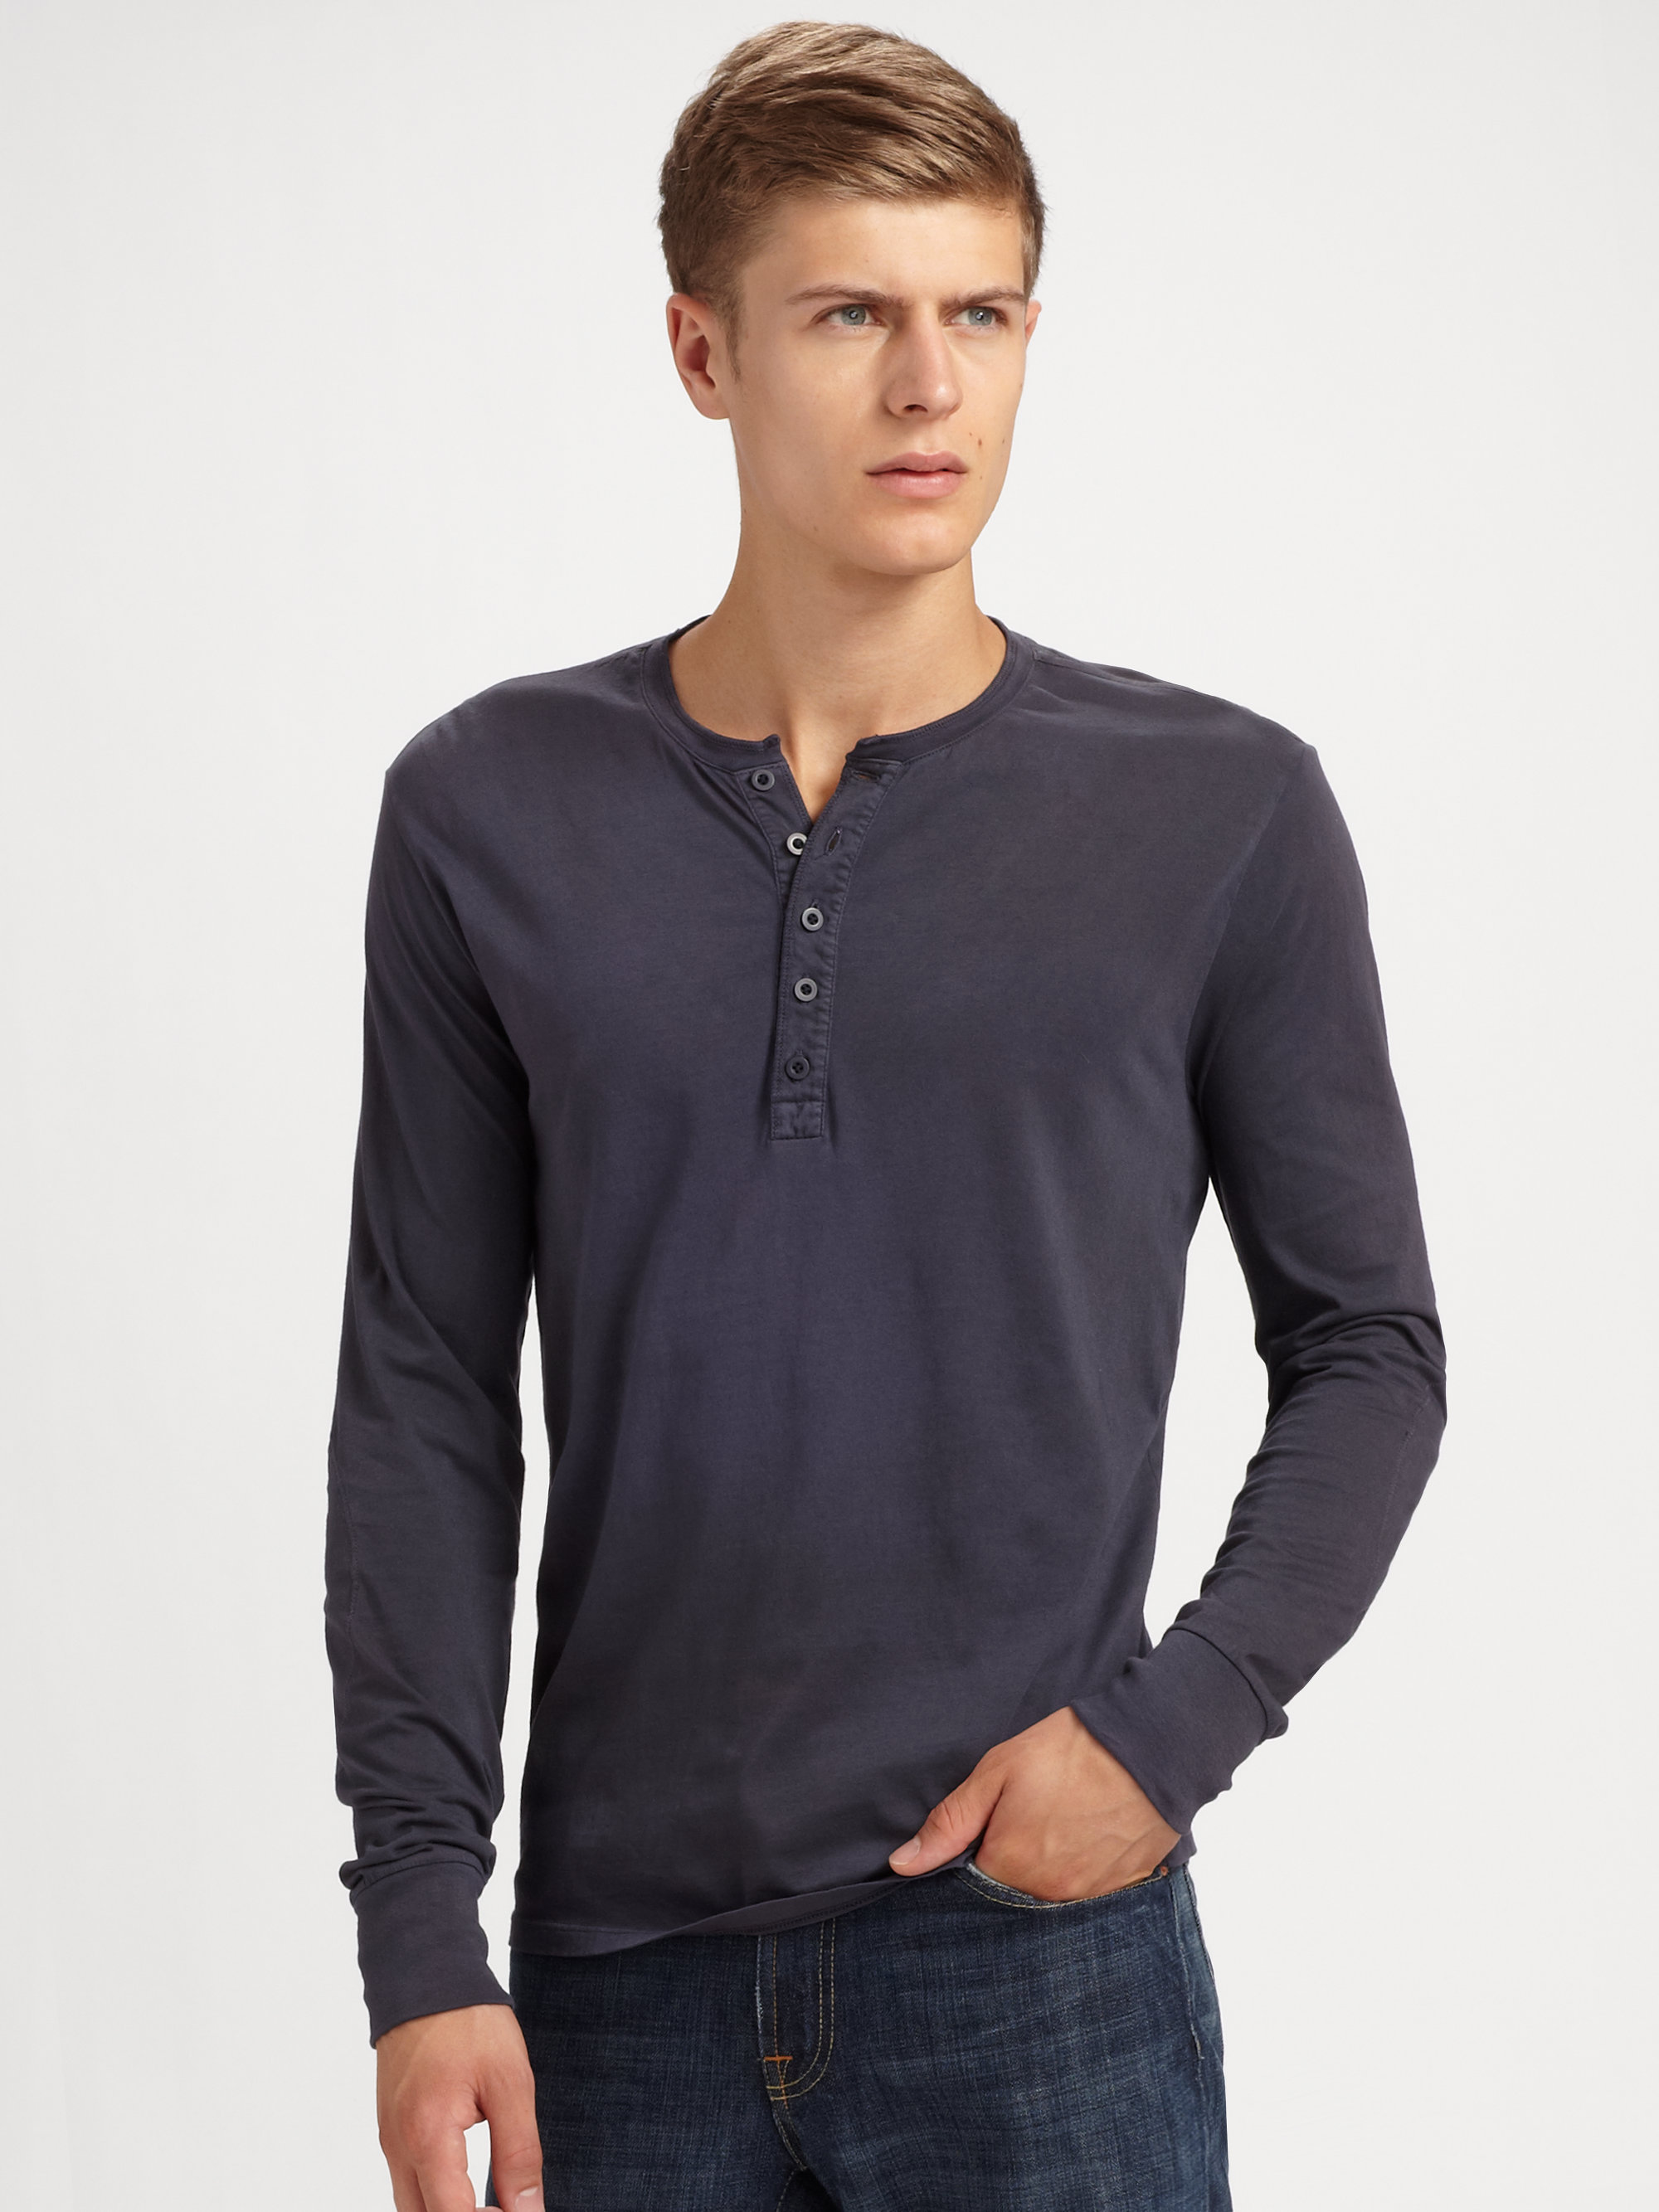 Shop for mens henley sweater online at Target. Free shipping on purchases over $35 and save 5% every day with your Target REDcard.